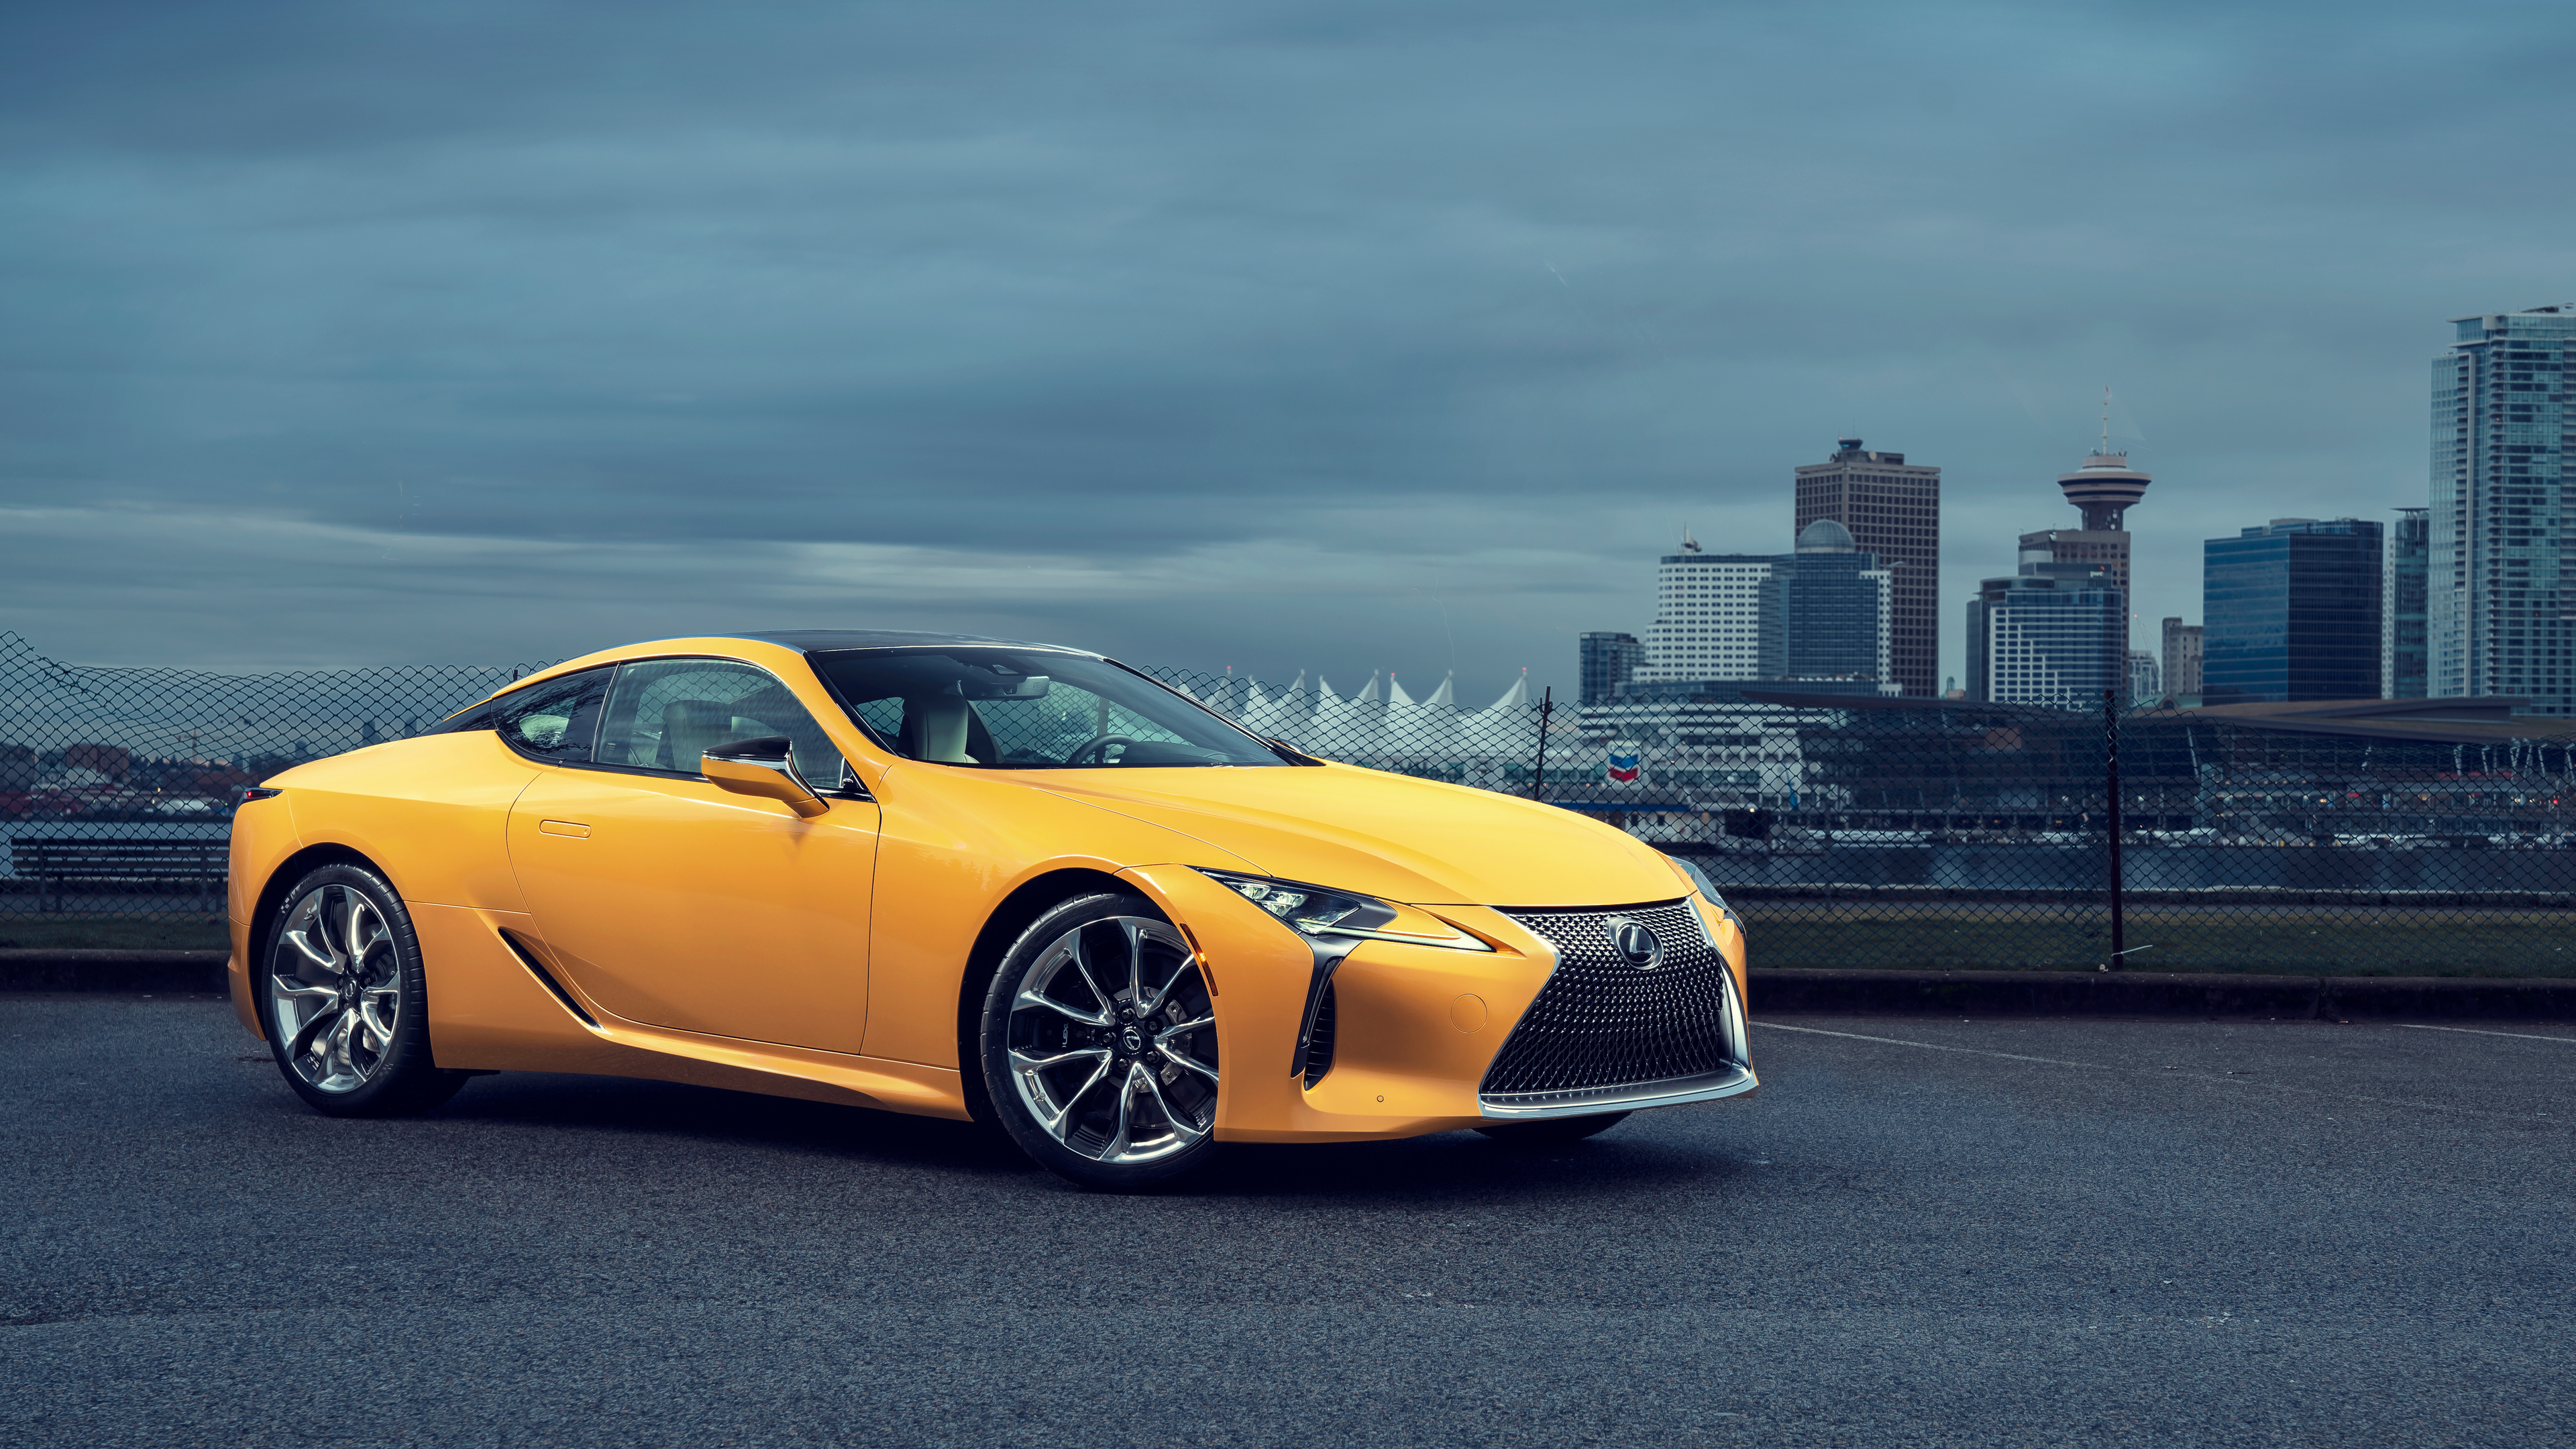 2019 lexus lc 500 4k 1554245185 - 2019 Lexus LC 500 4k - lexus wallpapers, lexus lc 500 wallpapers, hd-wallpapers, cars wallpapers, 8k wallpapers, 5k wallpapers, 4k-wallpapers, 2019 cars wallpapers